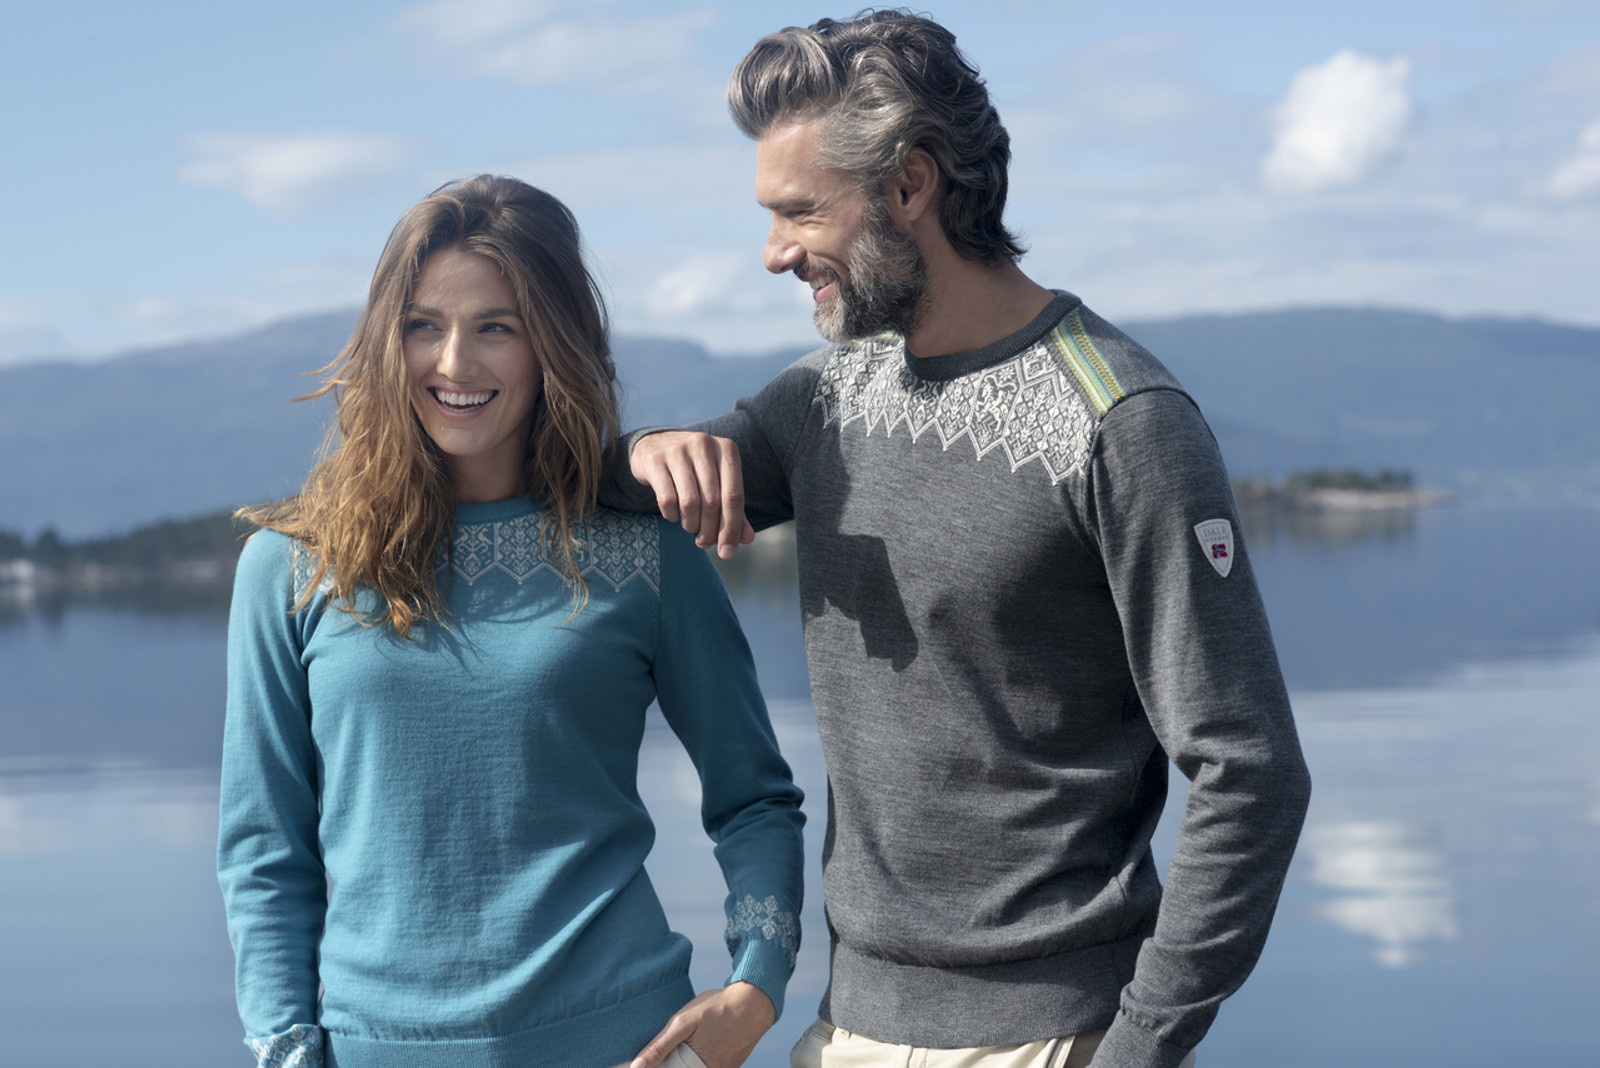 Woman wearing Dale of Norway Women's Lillehammer Sweater in Turquoise, 93261-G and man wearing Dale of Norway Men's Lillehammer Sweater in Smoke/Off White/Arctic Blue/Turquoise, 93271-E